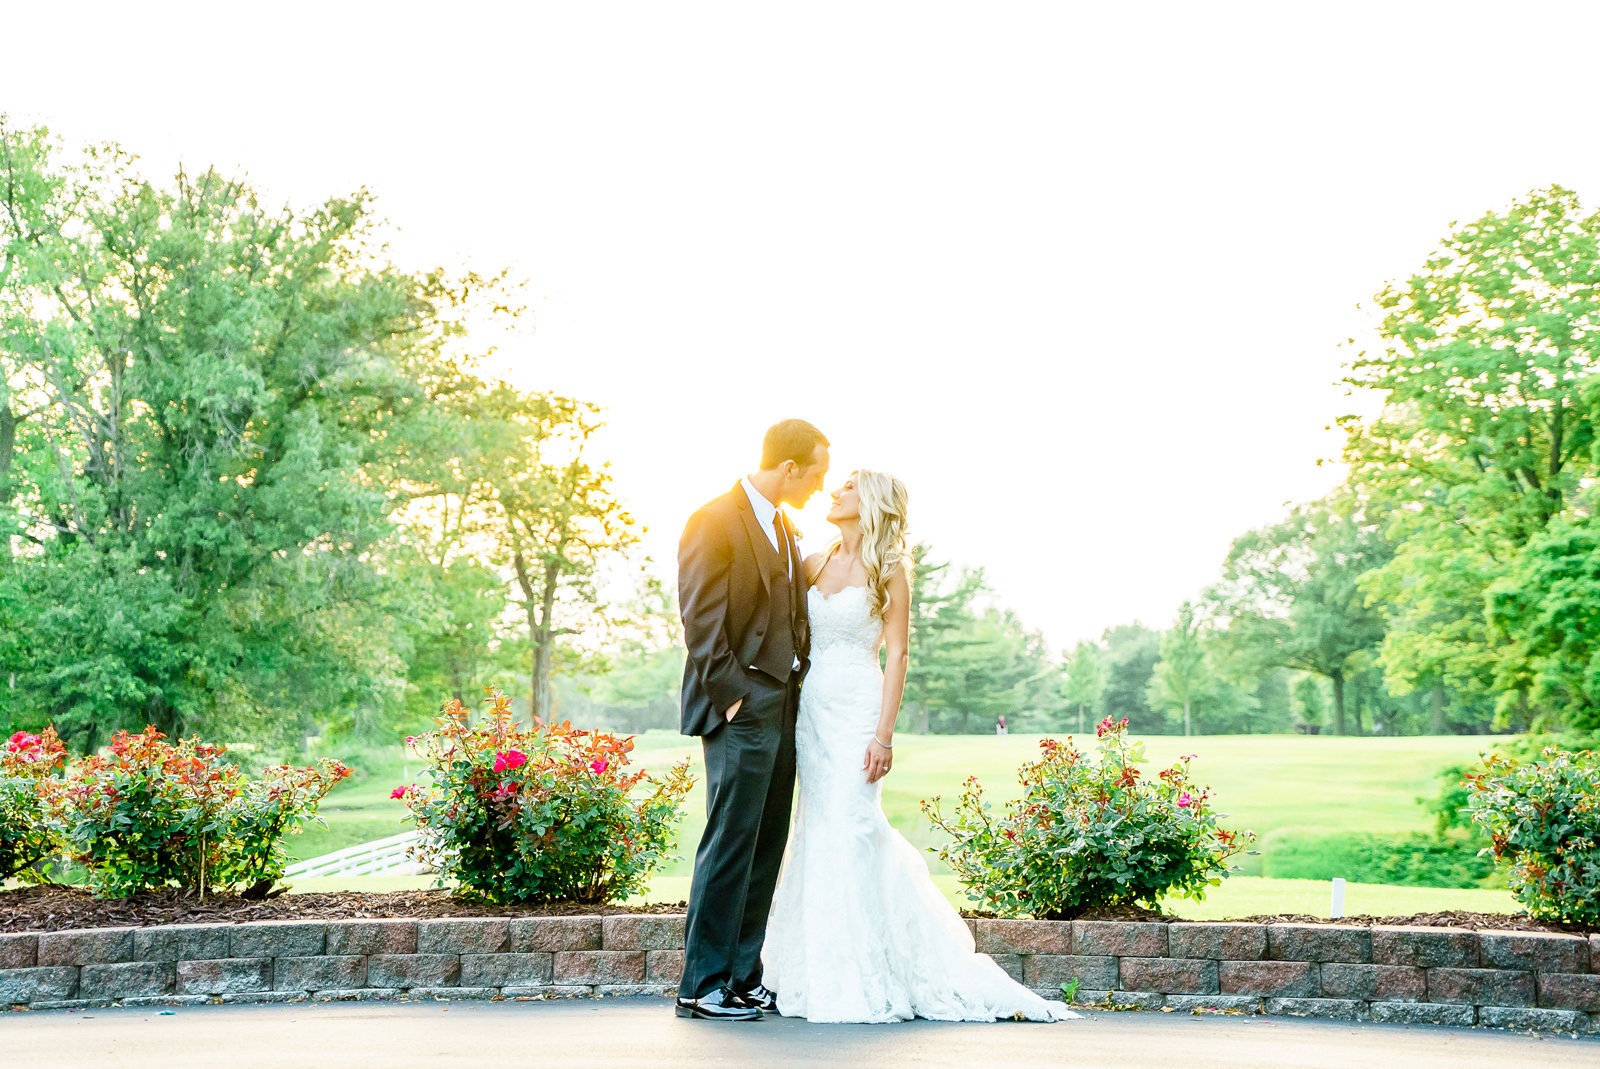 St. Clair Country Club Wedding Reception Photos with St. Louis Wedding Photographers by Oldani Photography 2.jpg